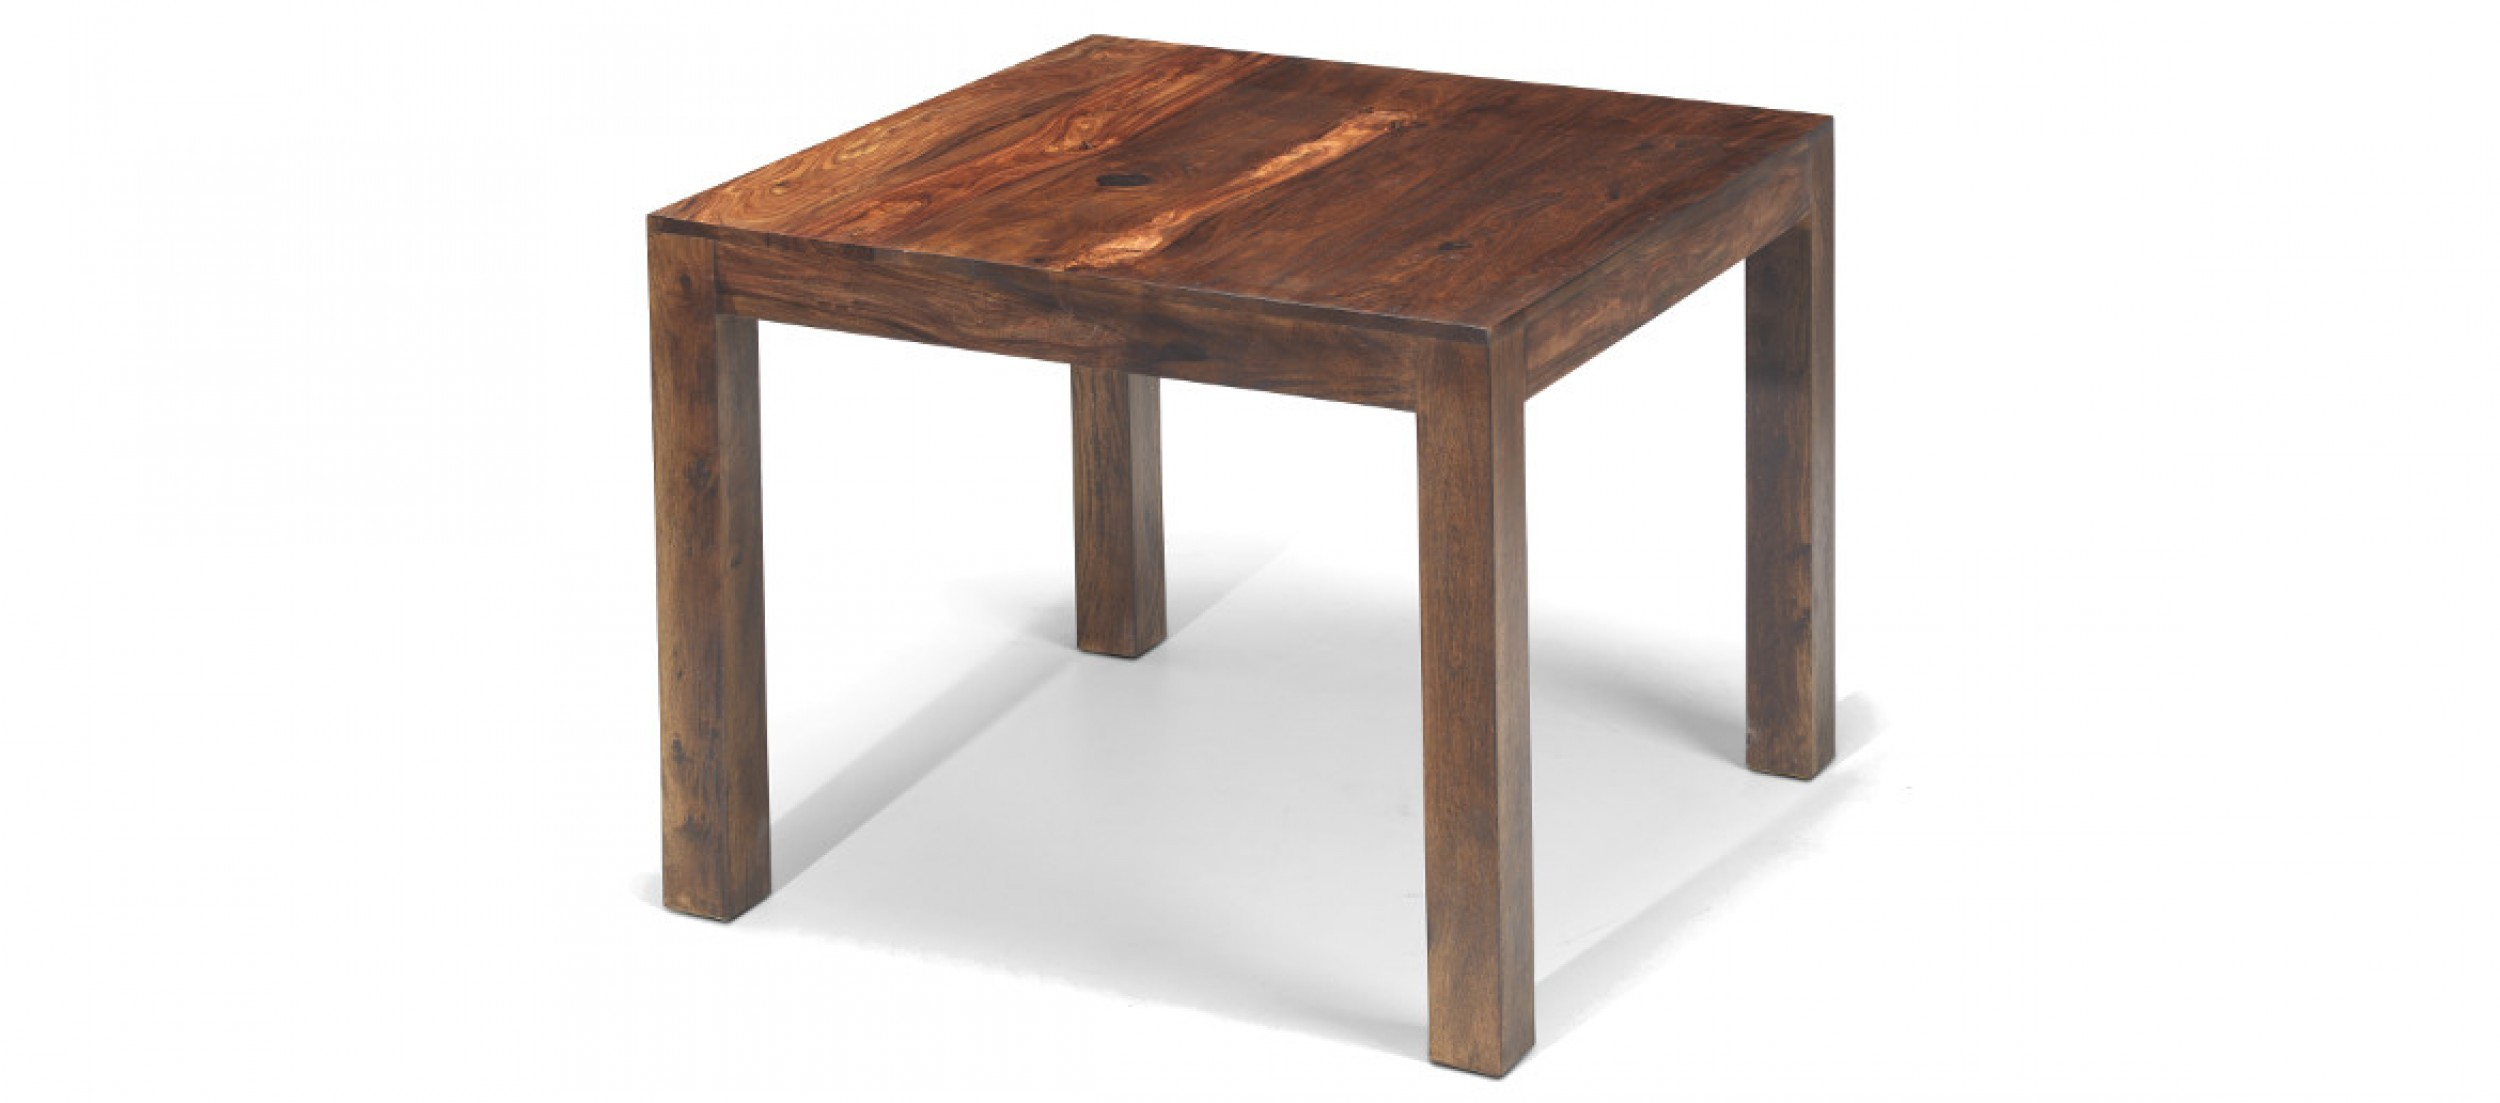 Cube sheesham 90 cm dining table quercus living for Table design 90 cm